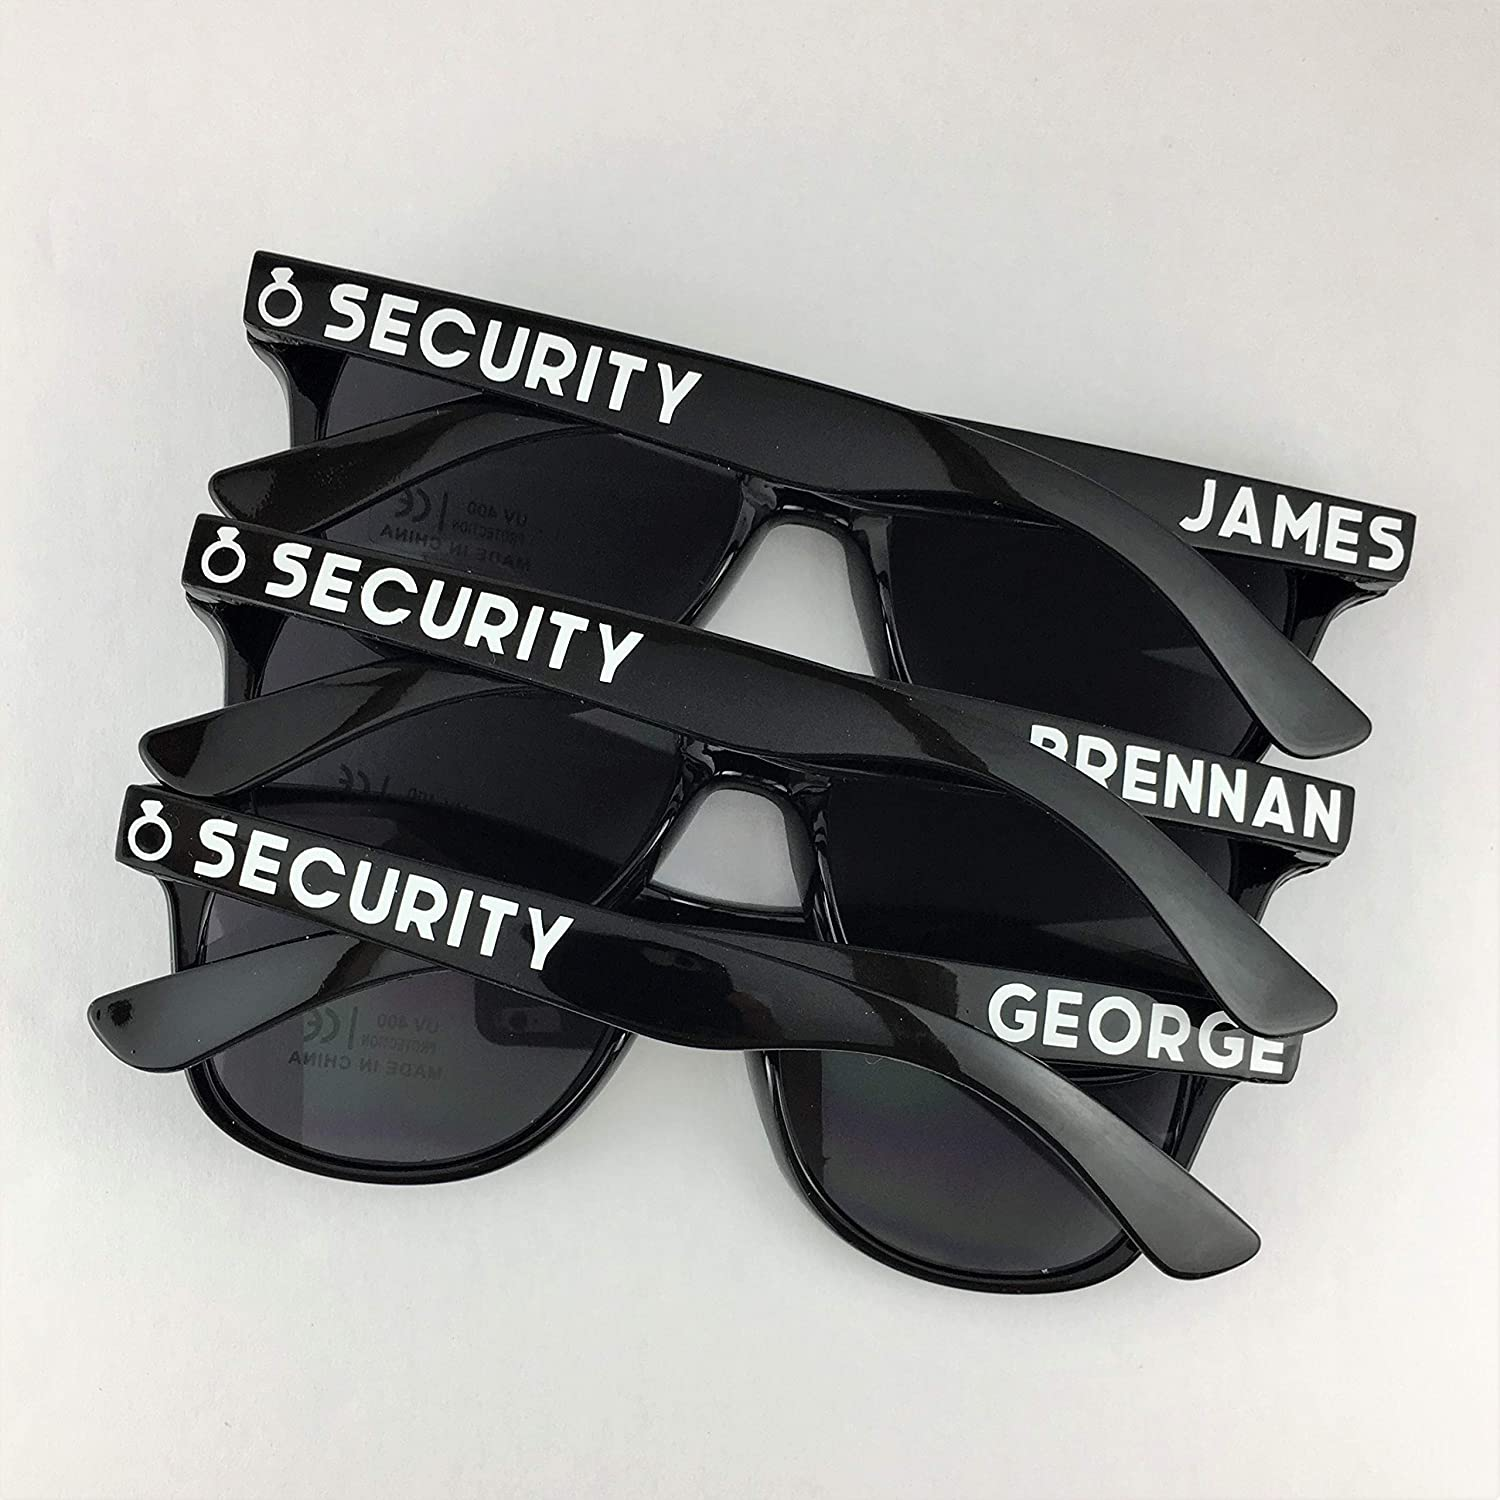 Ring Security Personalized Sunglasses Kids Size